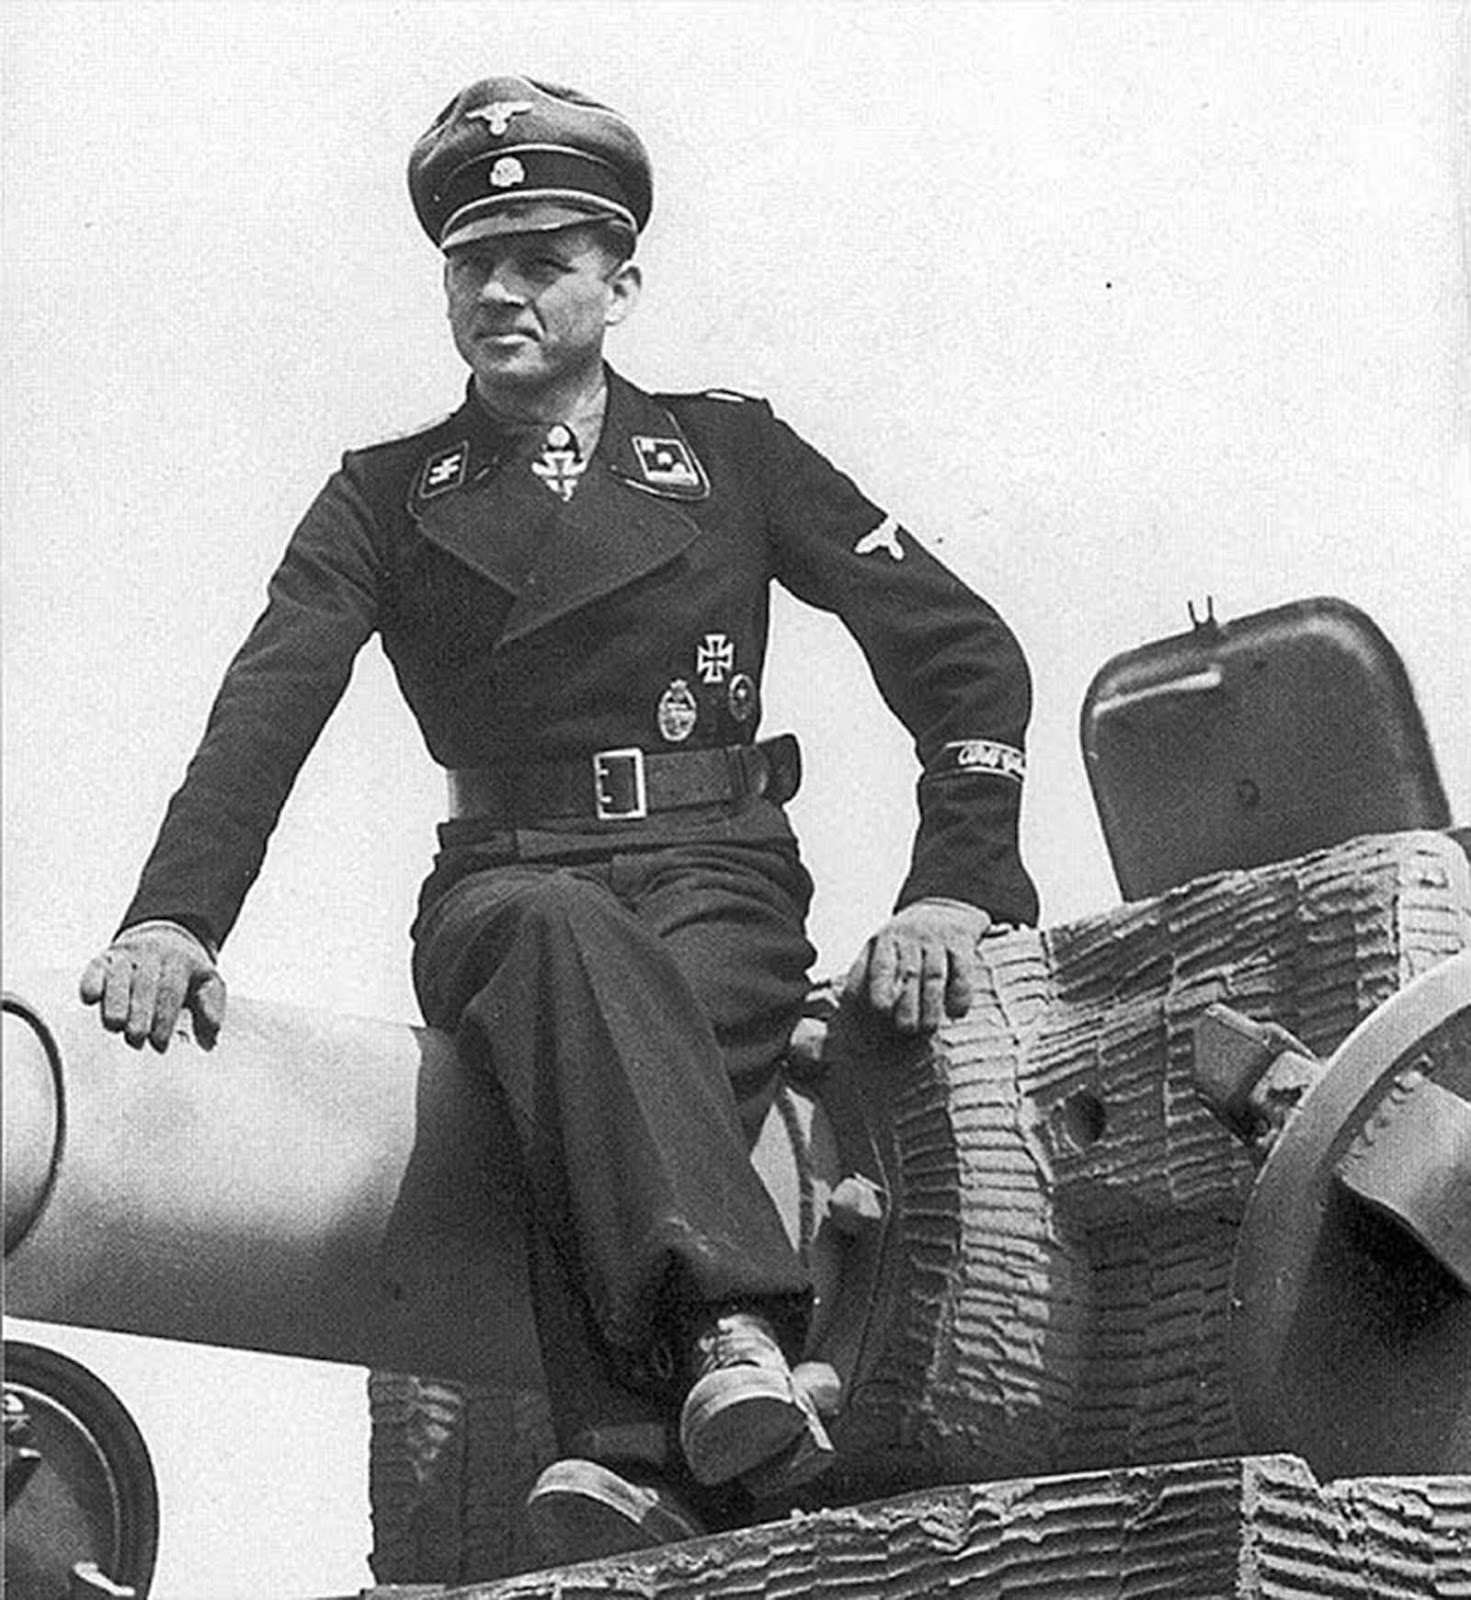 Michael Wittmann was one of the top panzer leaders of the war. You may be good at the video games, but he did it for real.